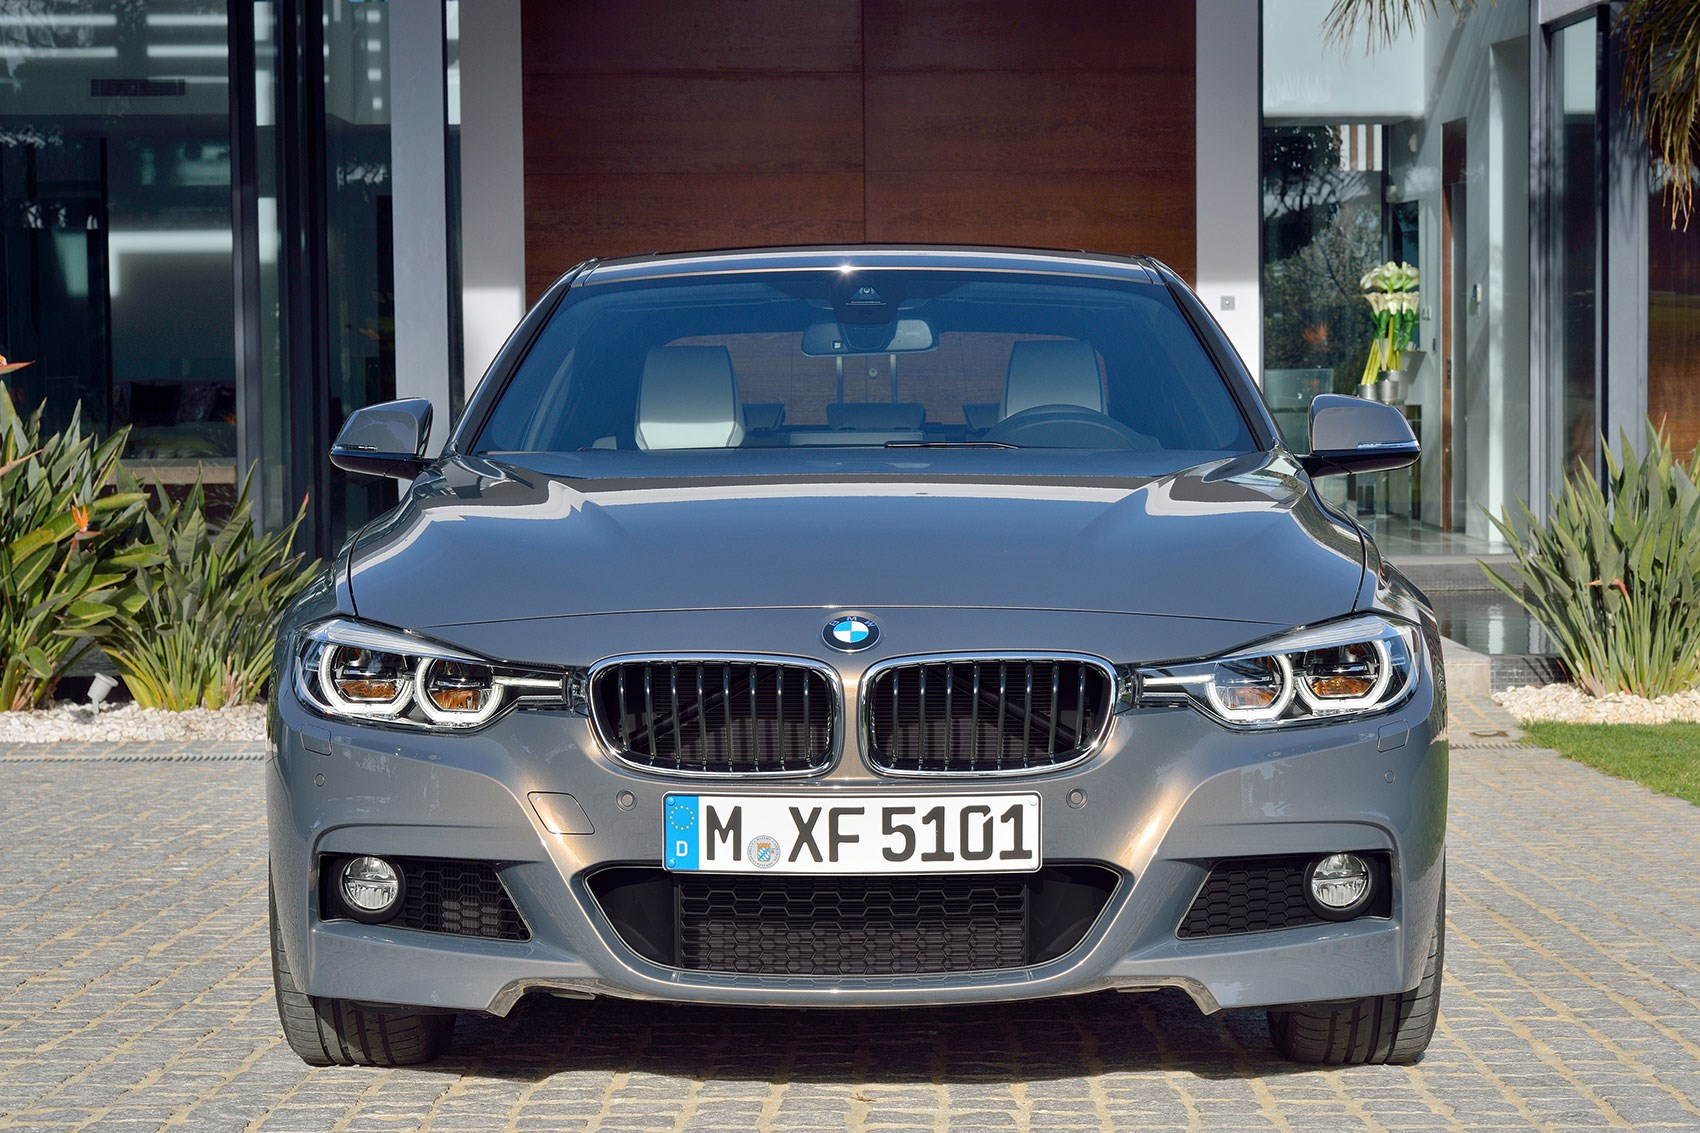 hight resolution of  revised 3 series front end looks lower and wider